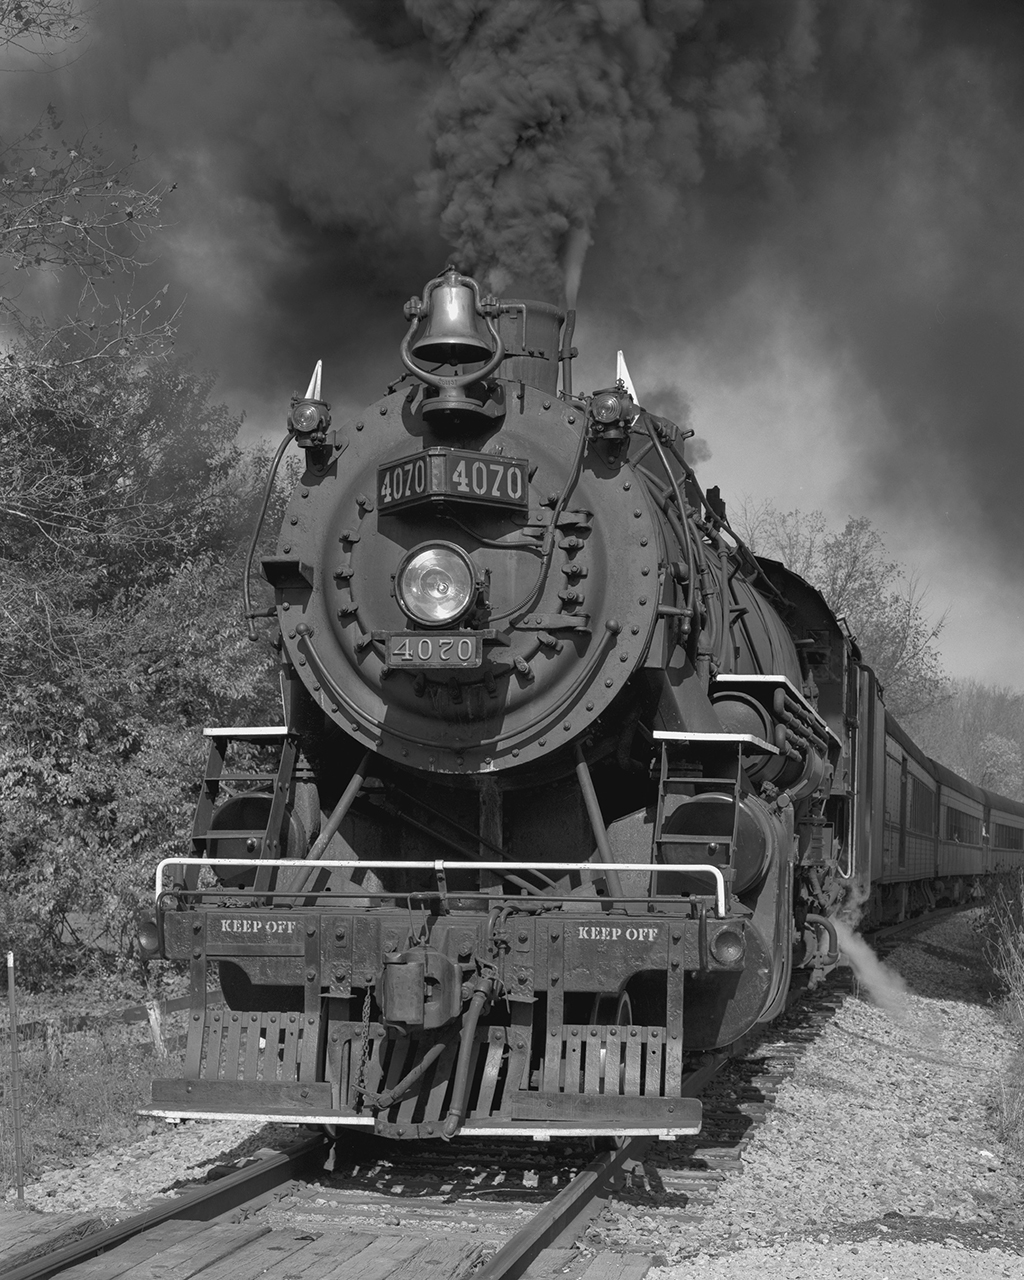 Bob Herbst, No. 4070 at Ira Rd. Crossing, 1989, platinum/palladium print, courtesy of the artist